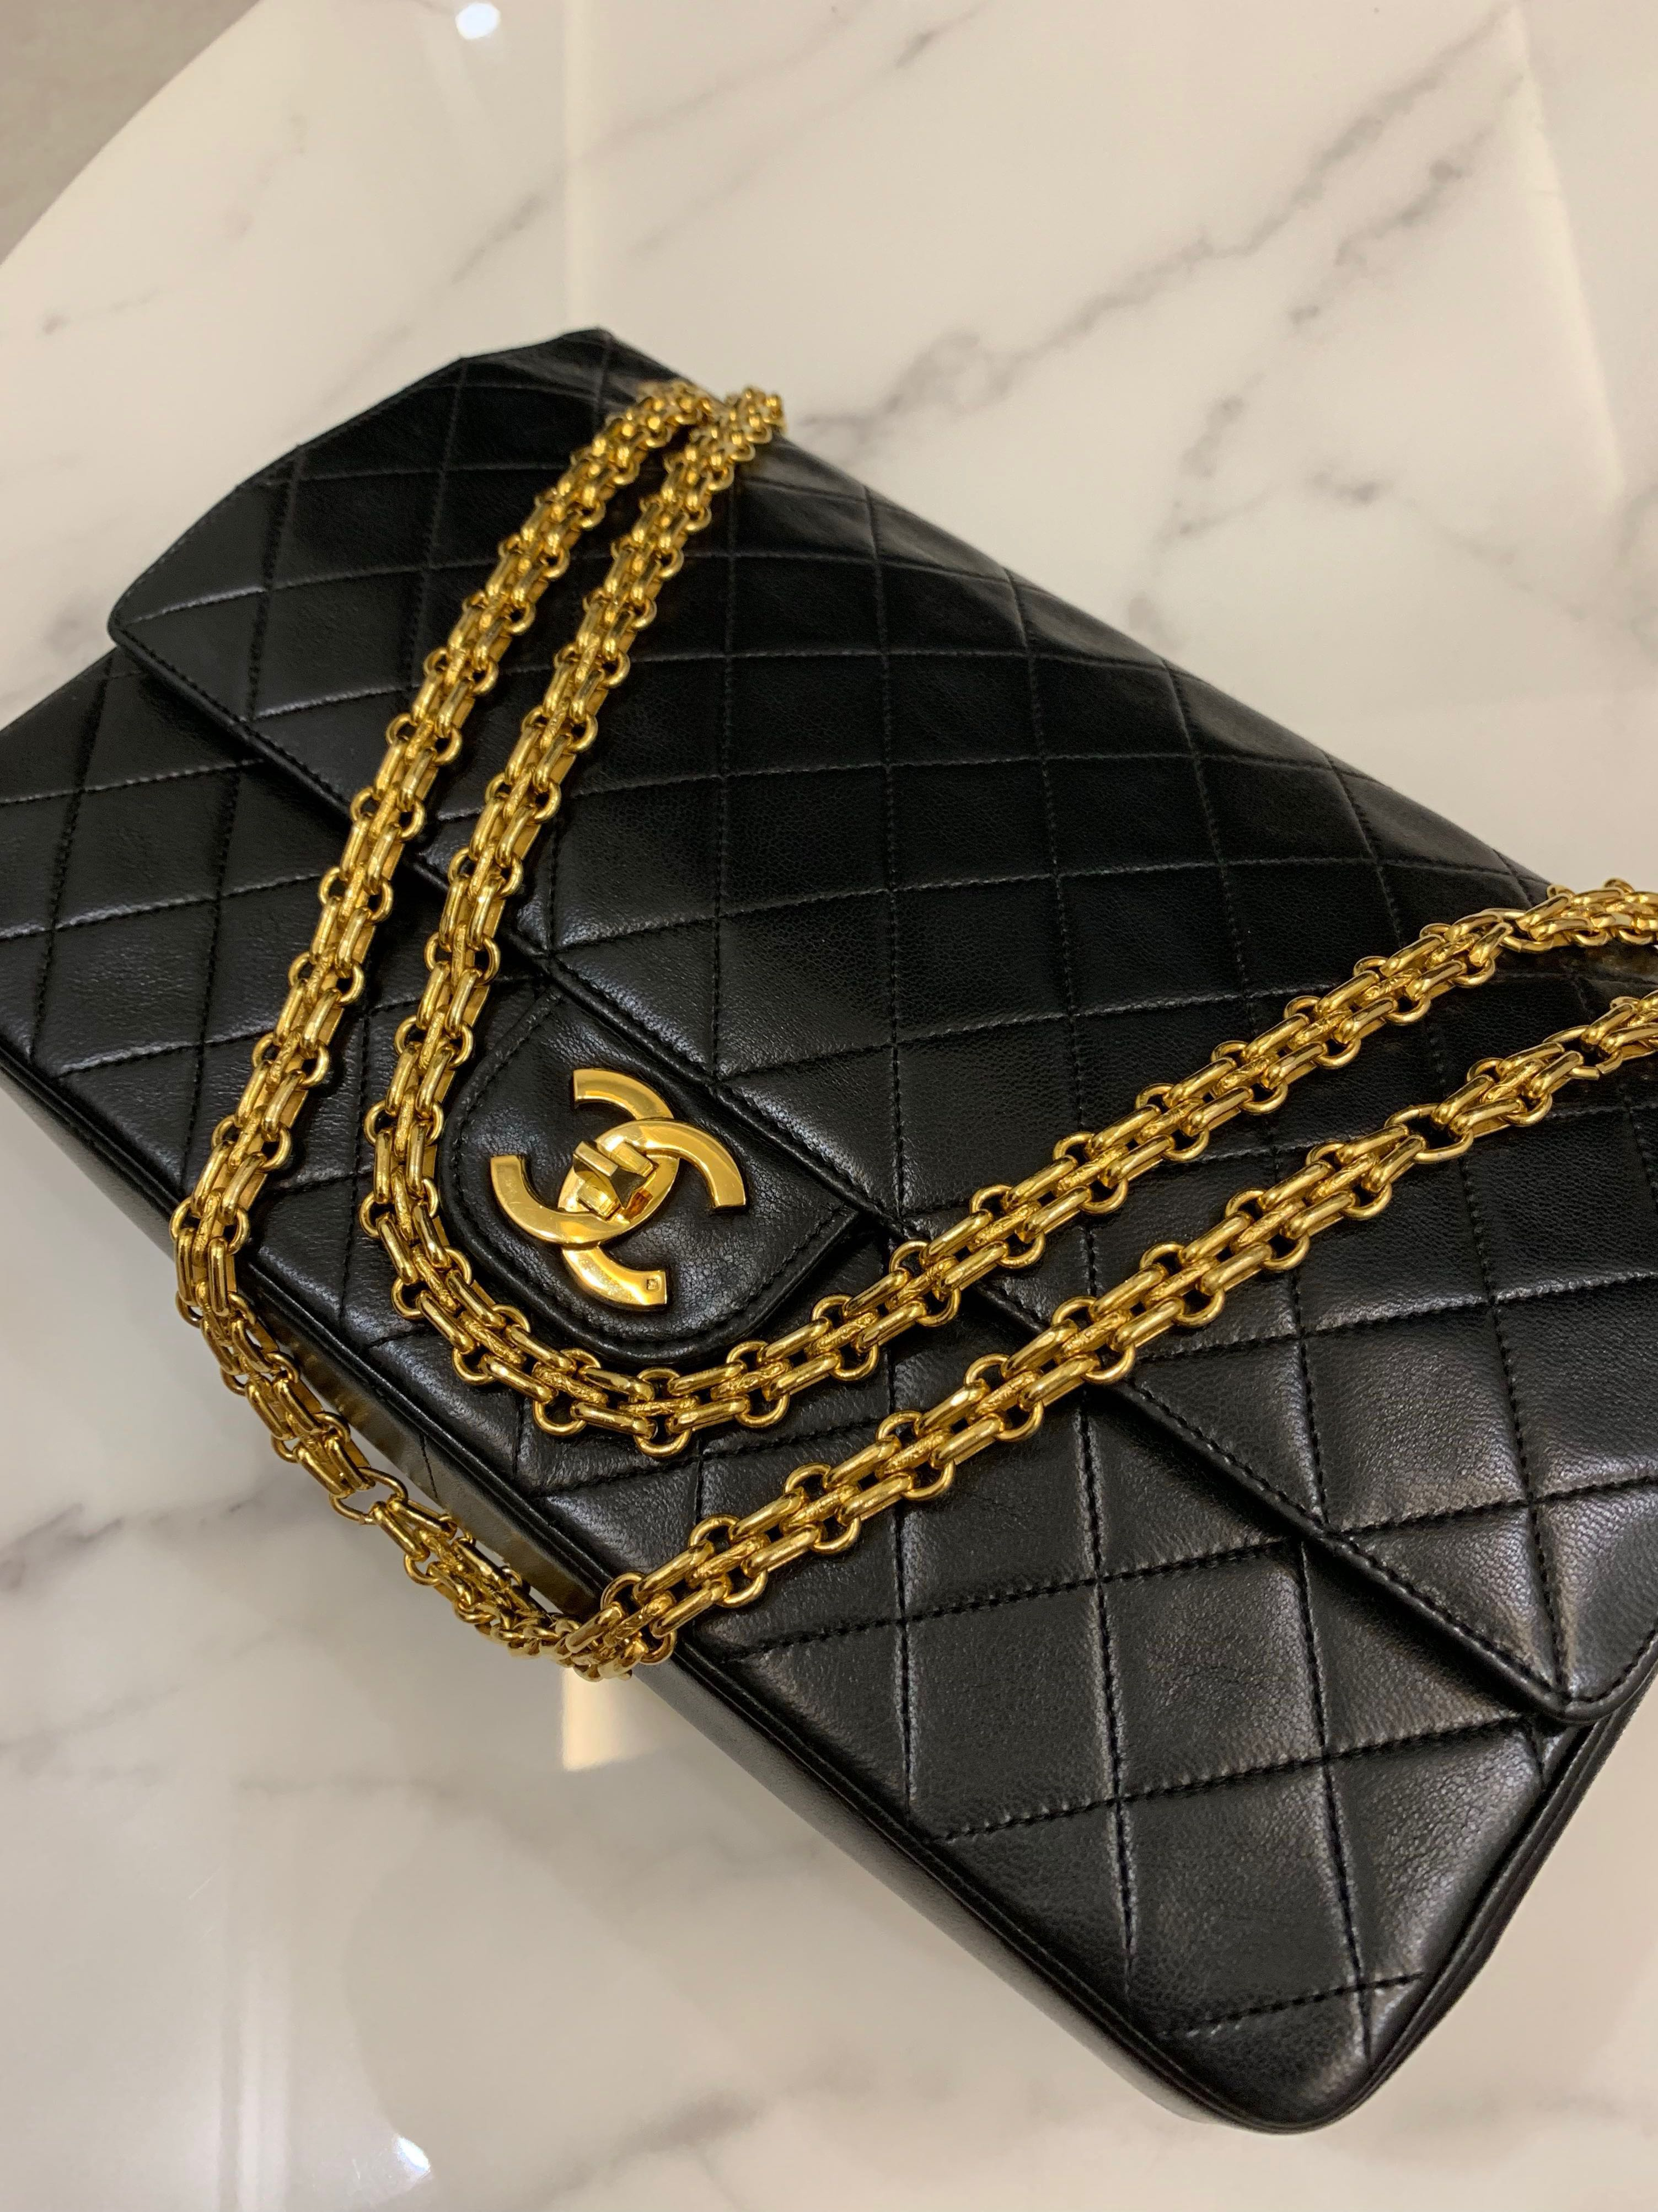 53b1de971611 Chanel Vintage reissue flap bag with mademoiselle chain, Luxury, Bags &  Wallets, Handbags on Carousell